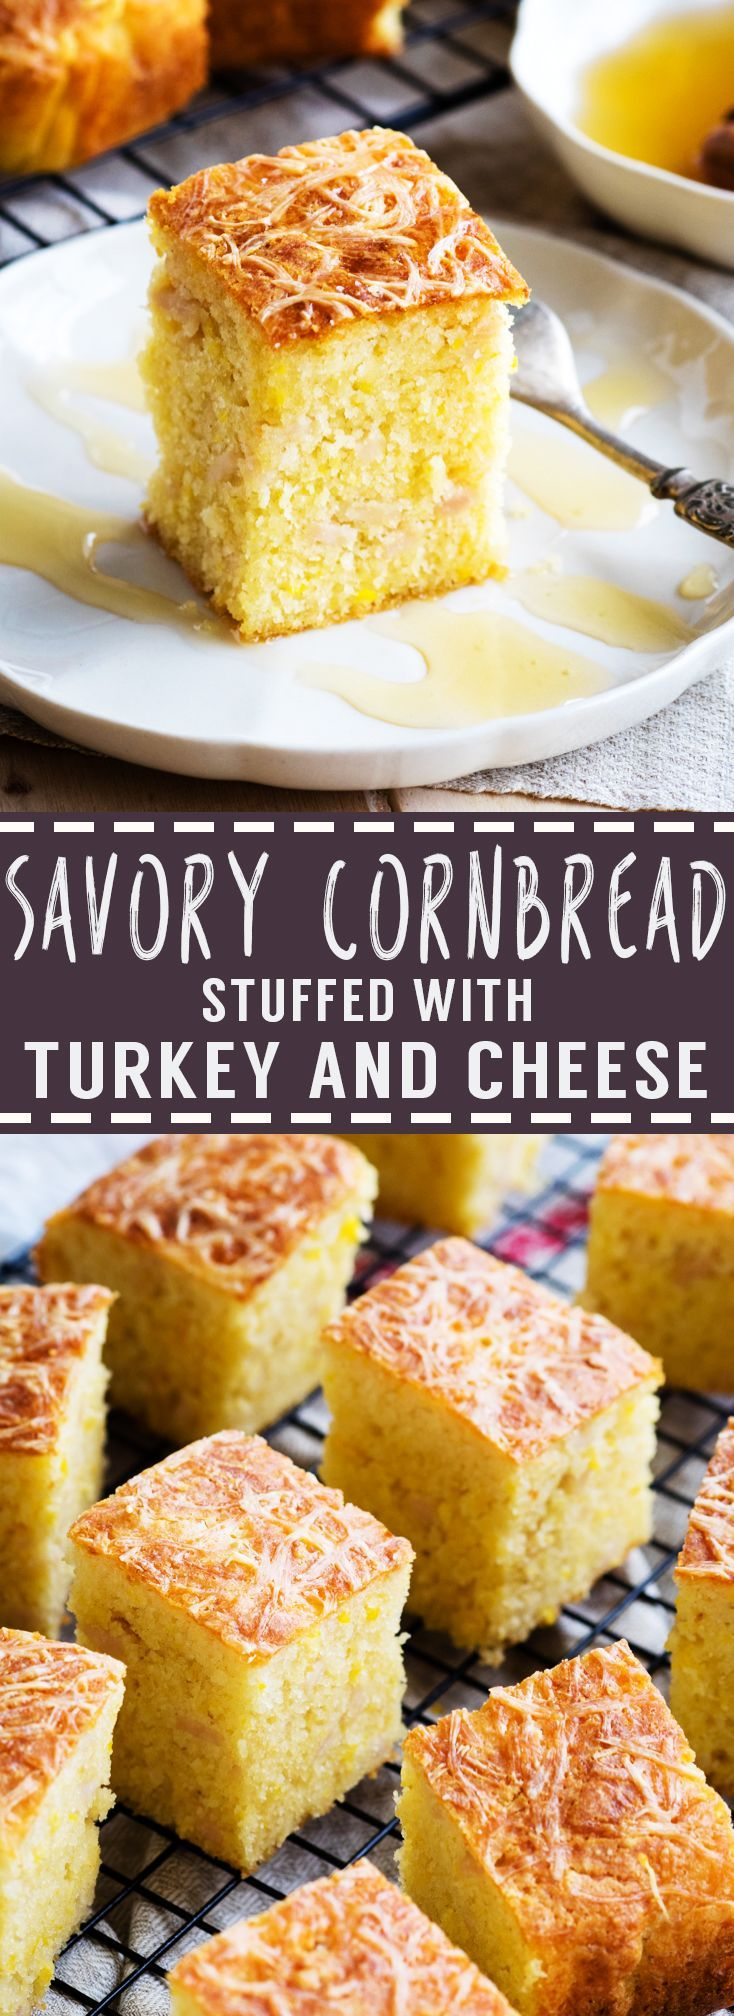 Savory Cornbread with Turkey and Cheese | The Worktop -- Easy to make and incredibly delicious with a golden crispy crust and soft tender inside